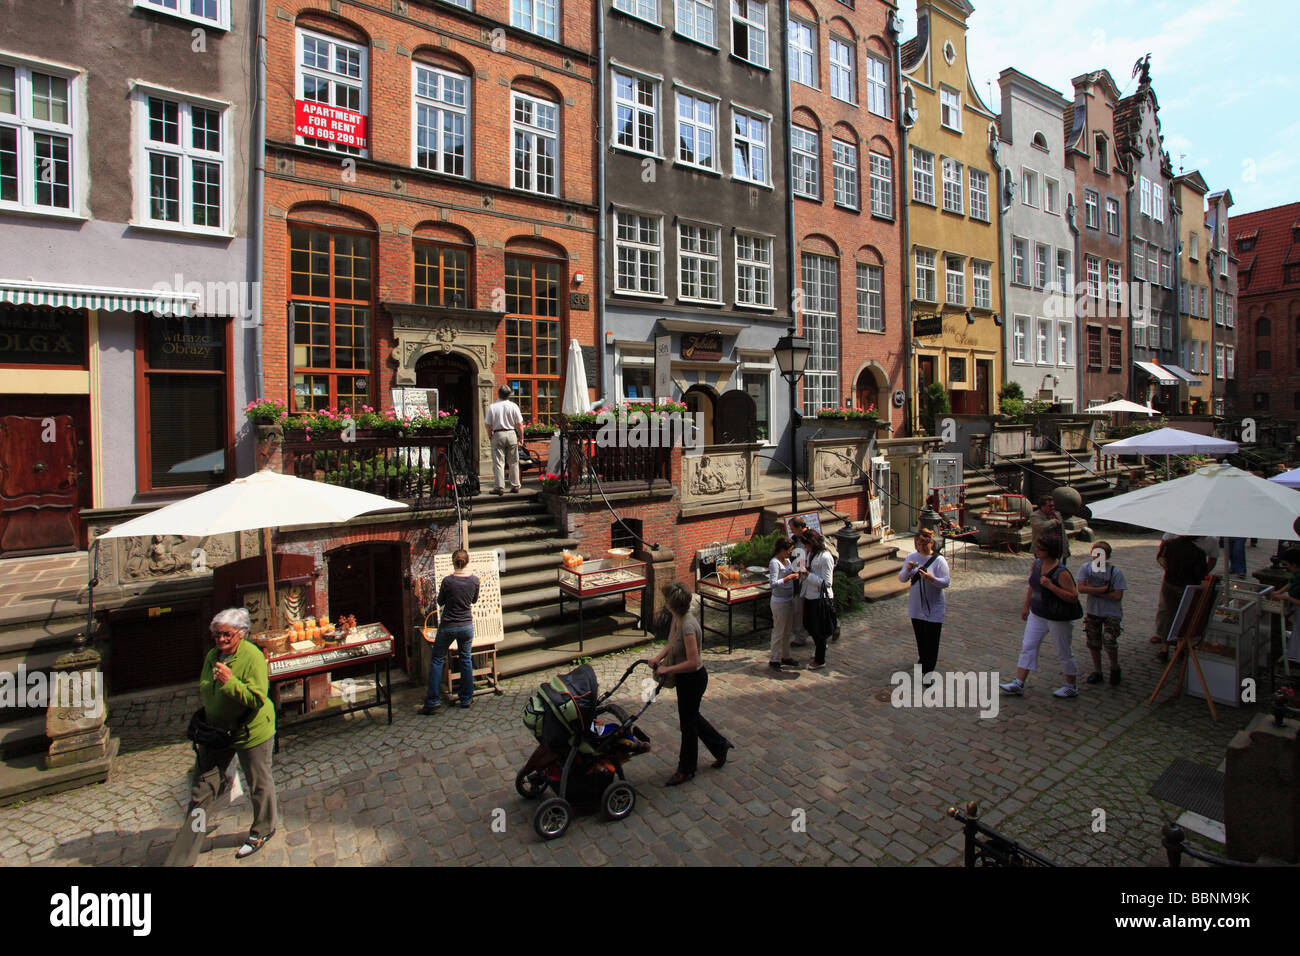 Poland Gdansk Mariacka Street boutiques - Stock Image